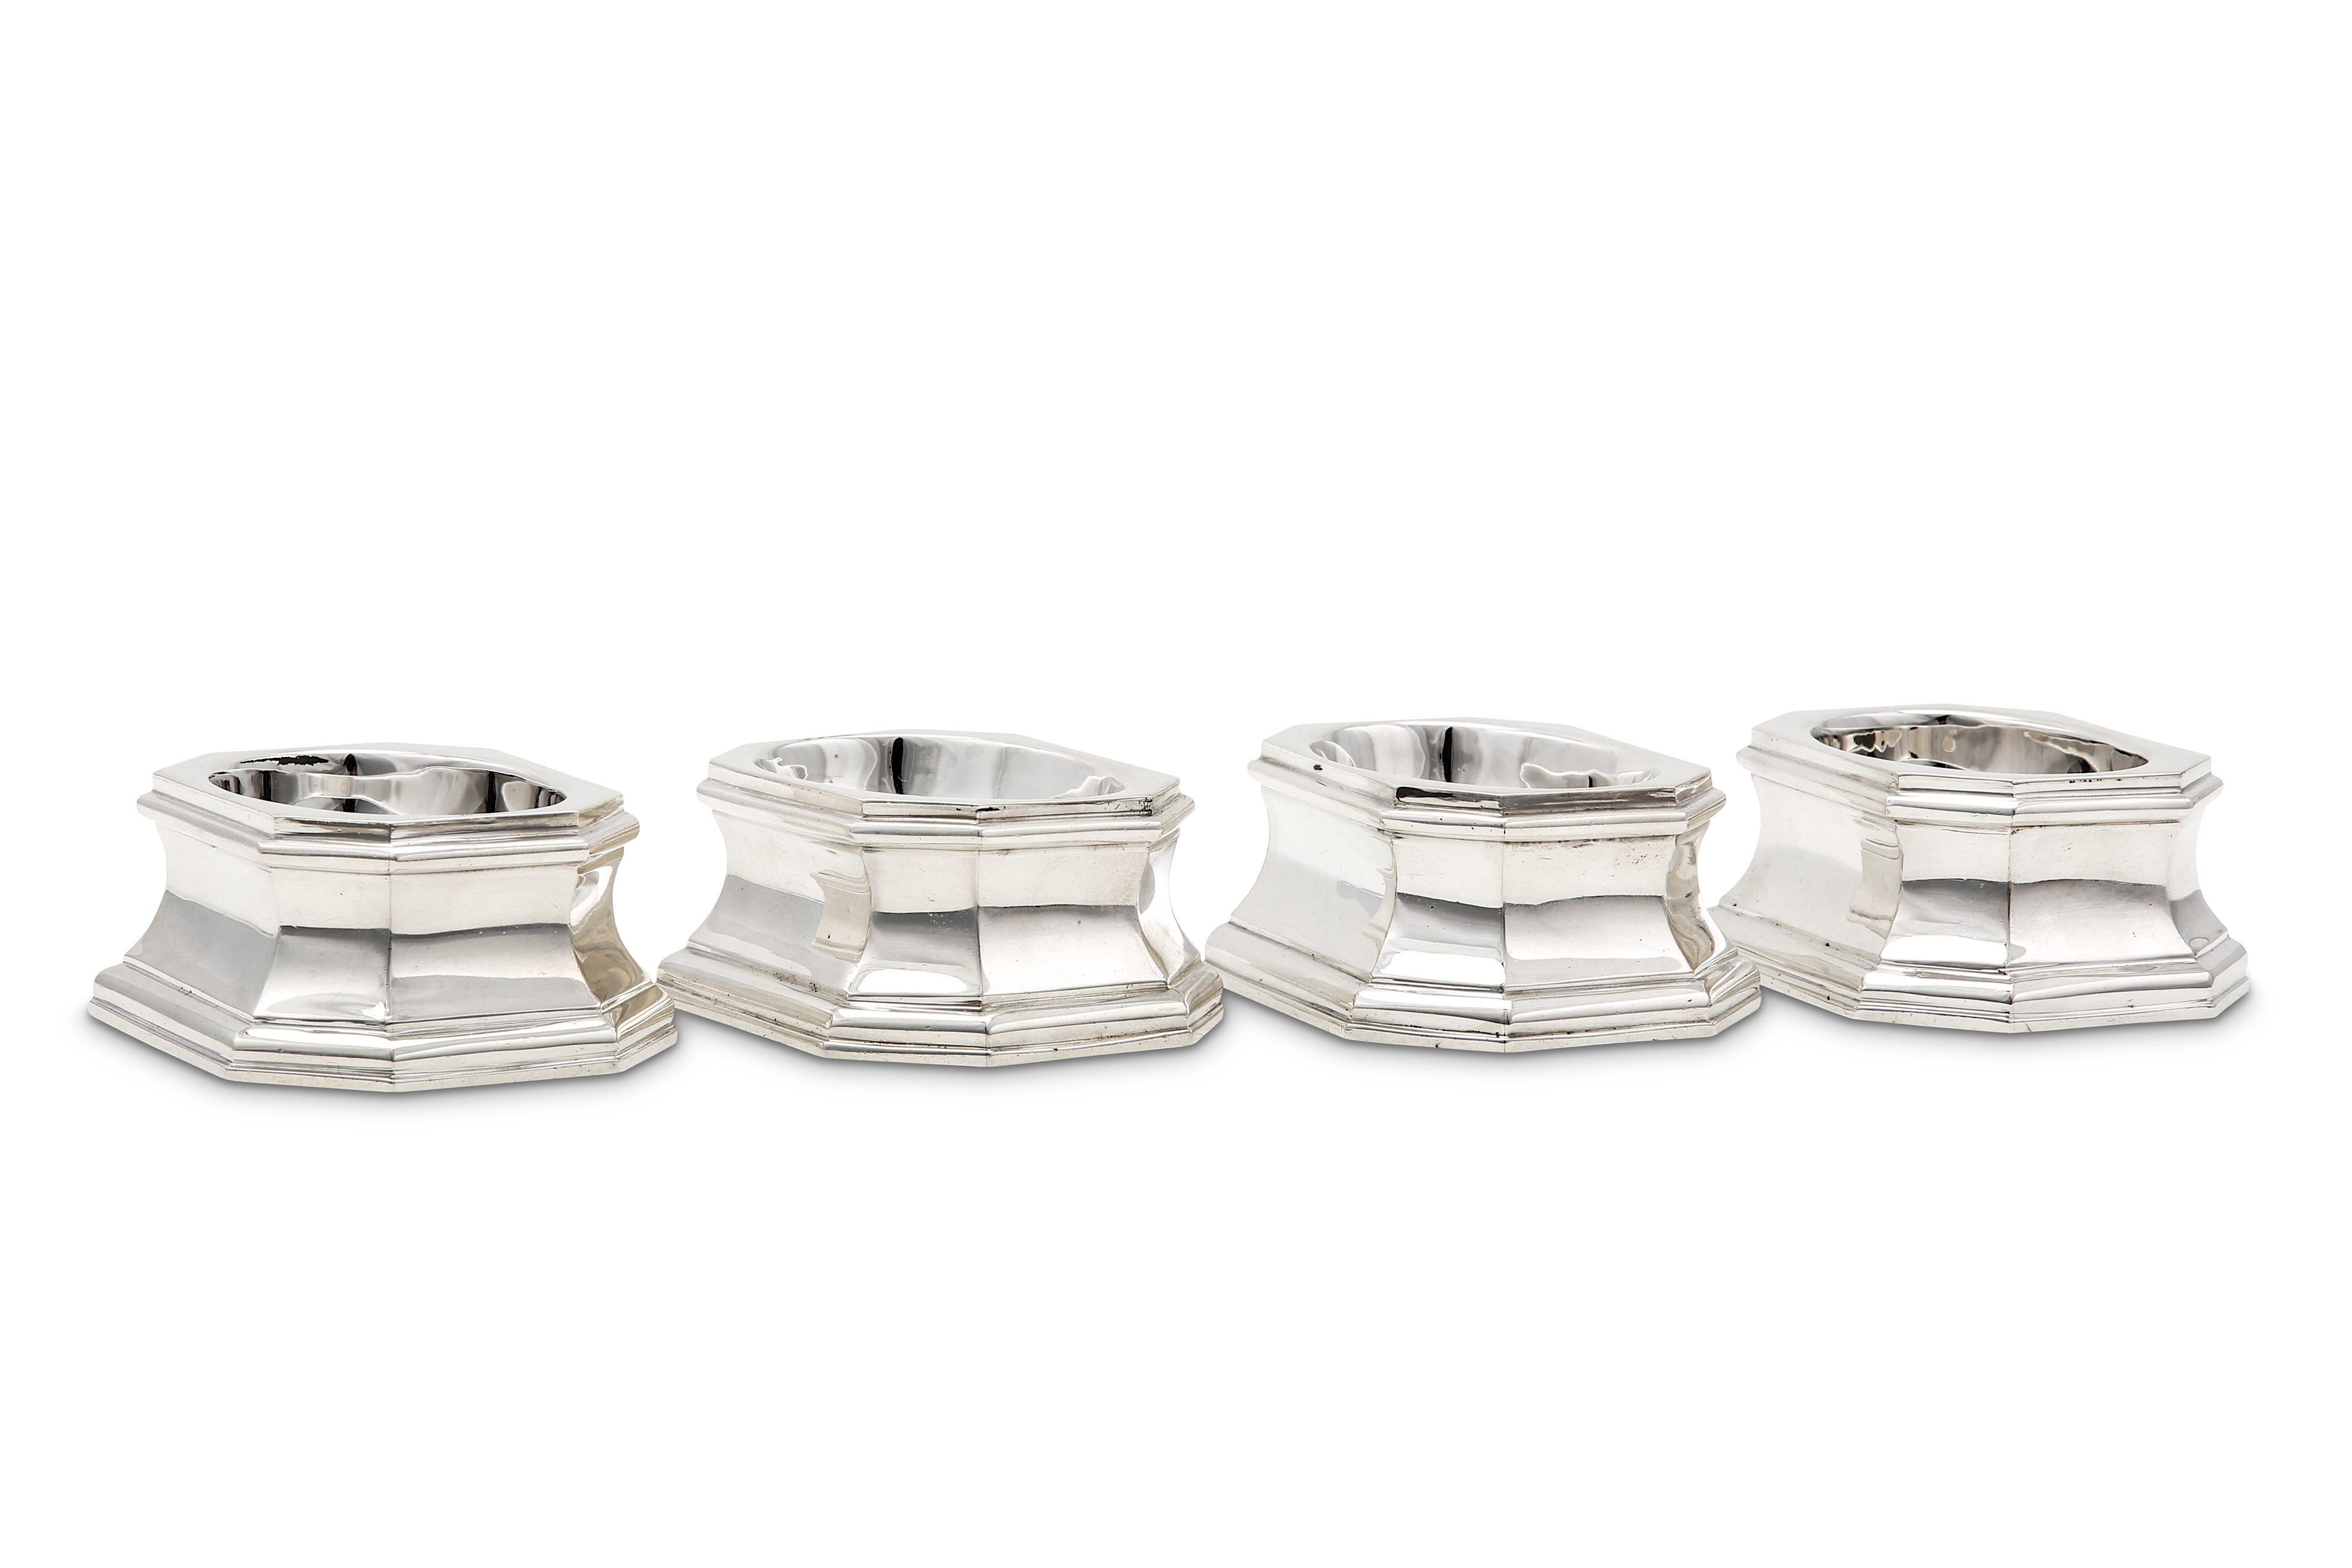 Lot 38 - A set of four George V Britannia standard silver trencher salts, London 1927 by Lionel Alfred Cricht